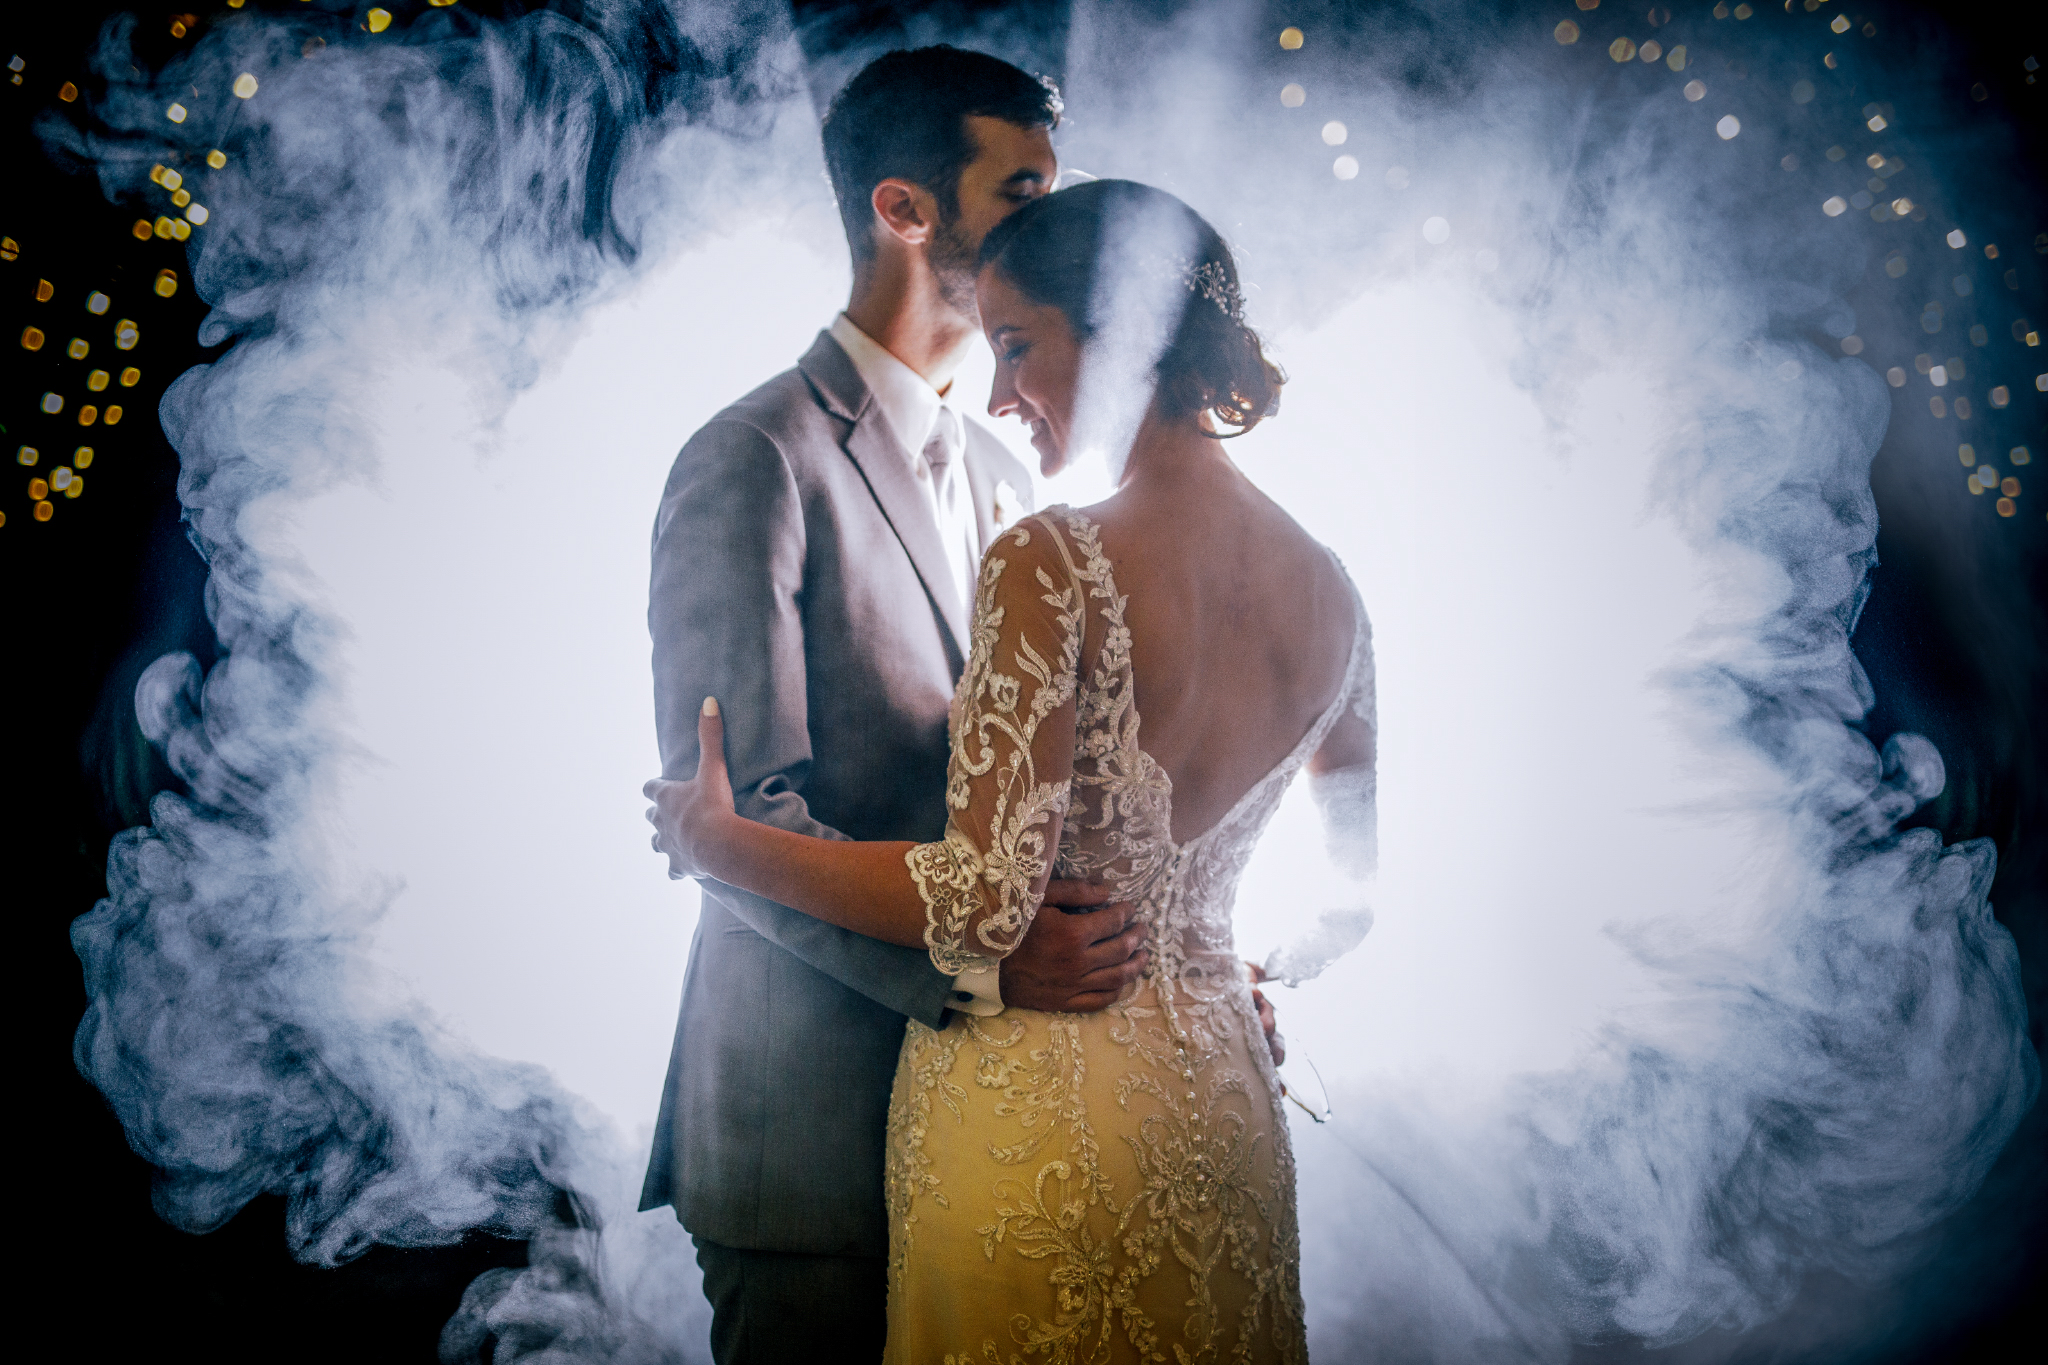 san diego wedding   photographer | groom kissing bride's forehead while holding her waist with   smoke behind them